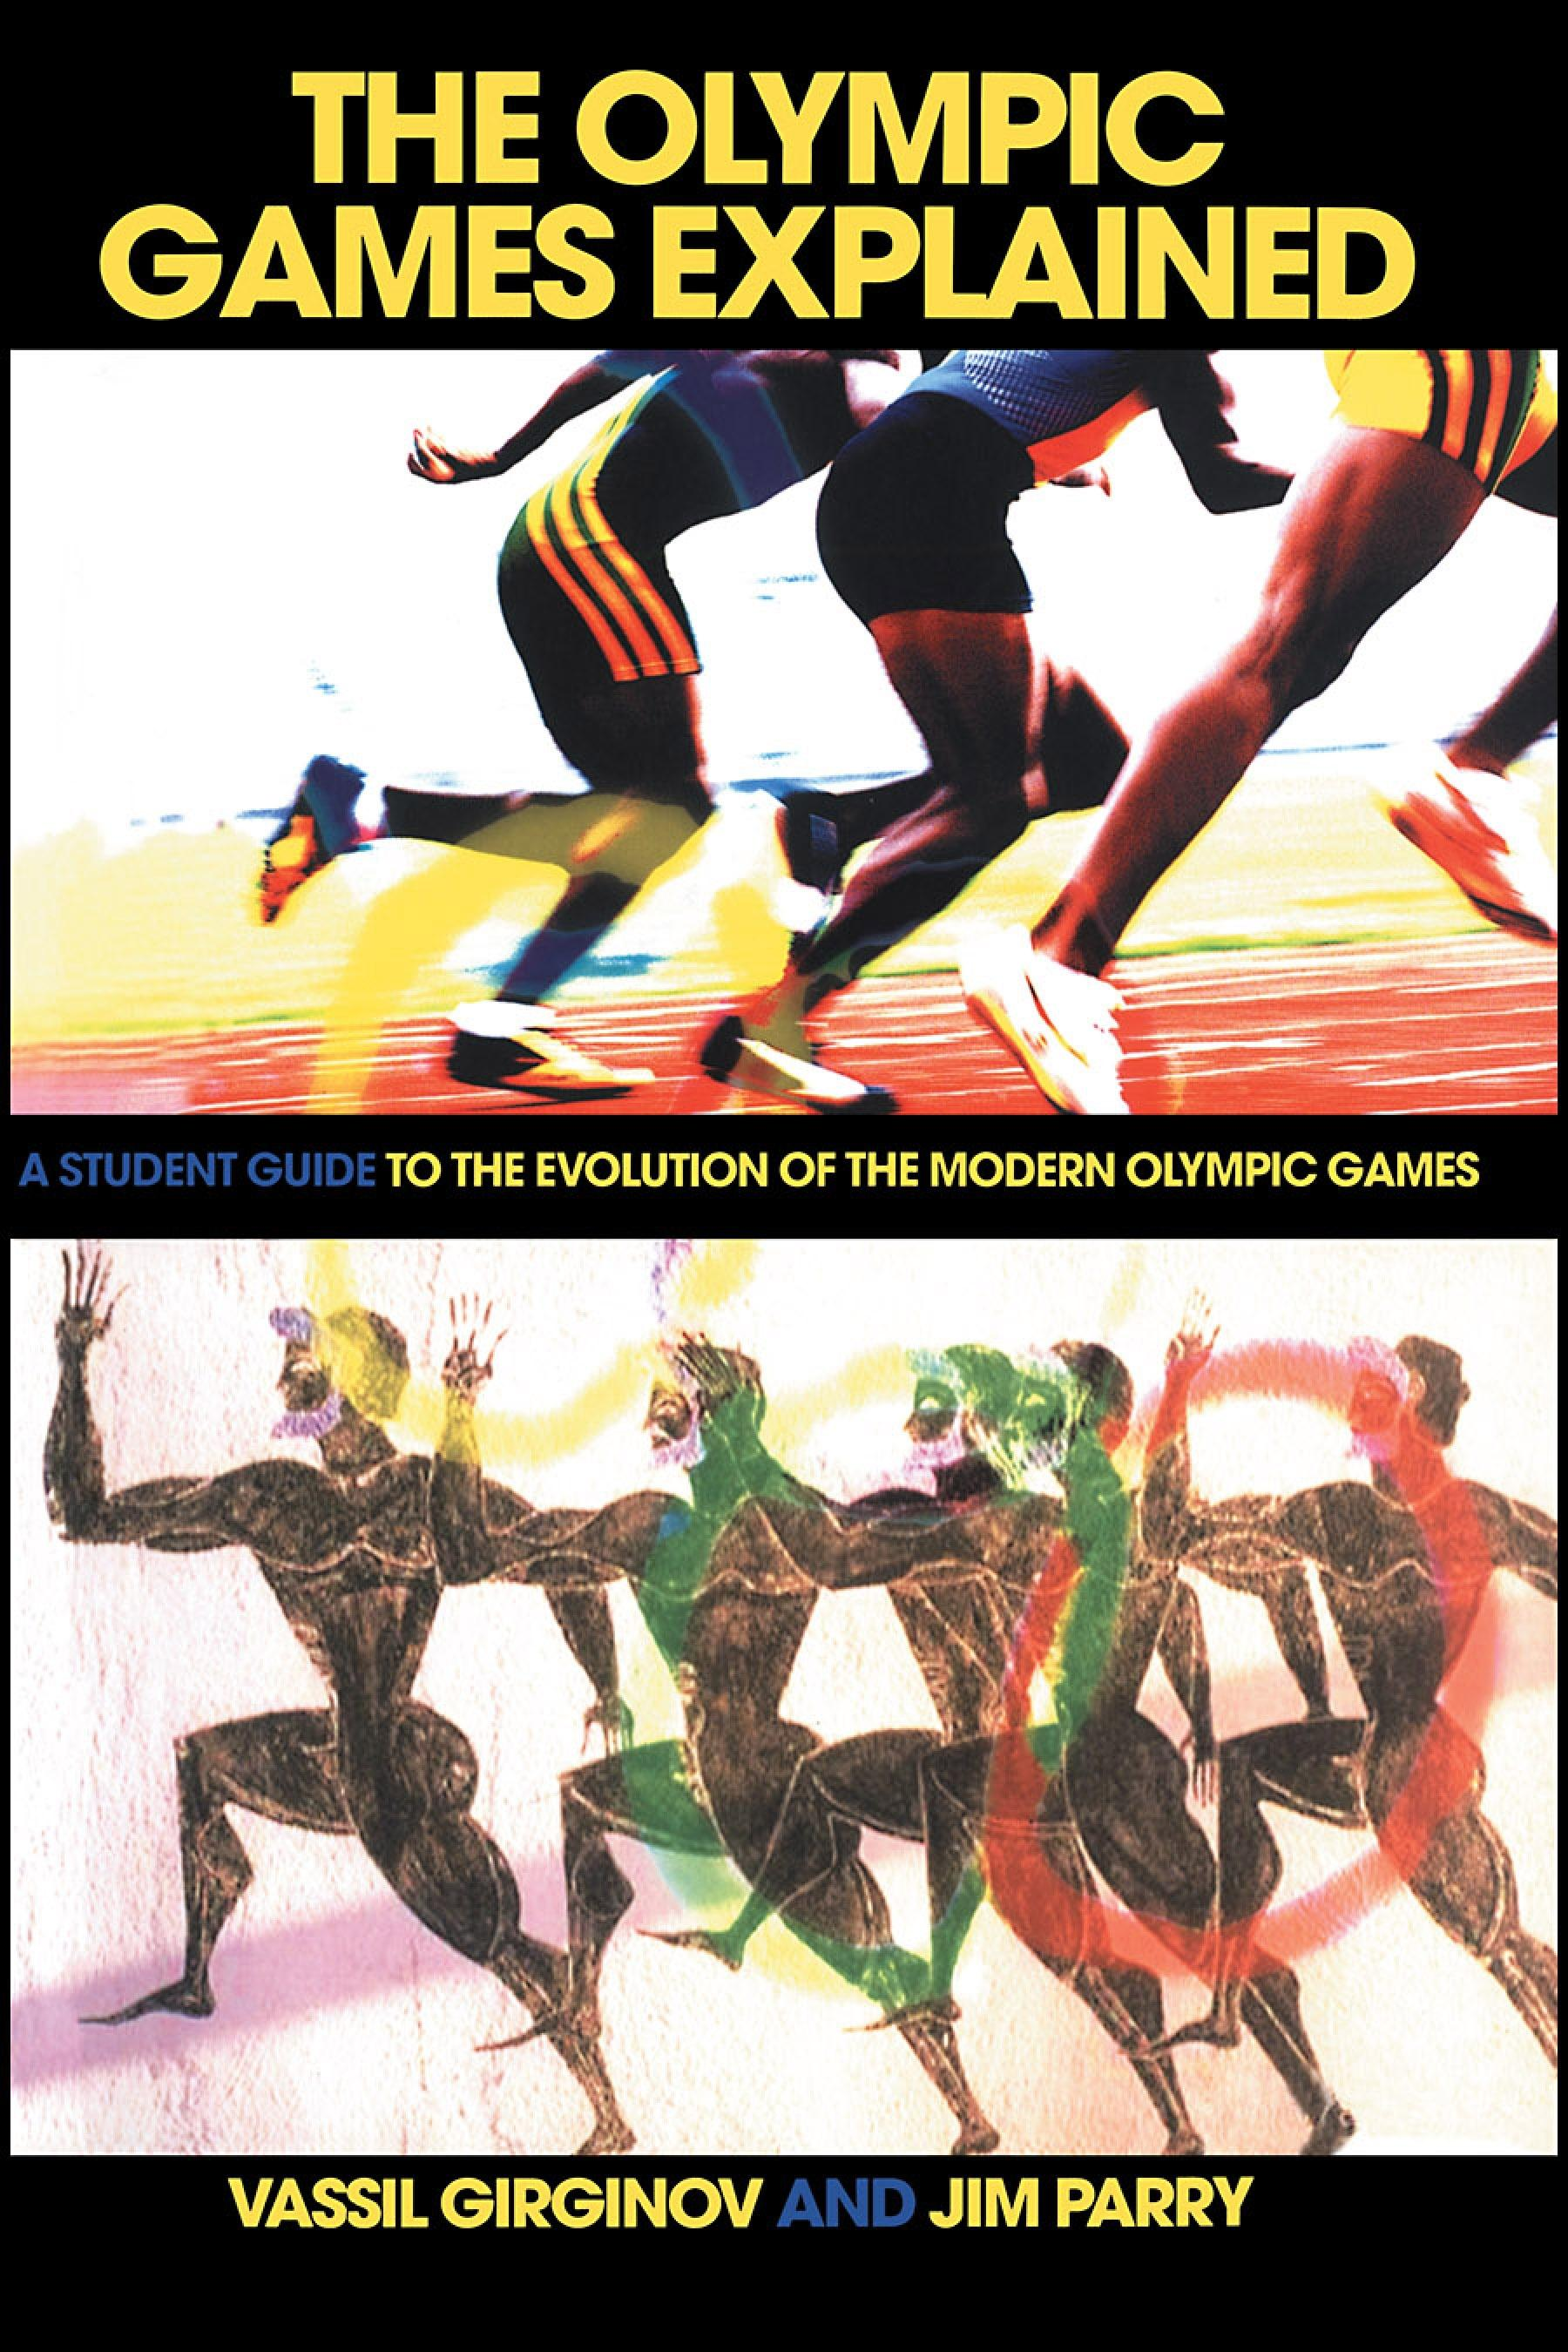 The Olympic Games Explained: A Student Guide to the Evolution of the Modern Olympic Games